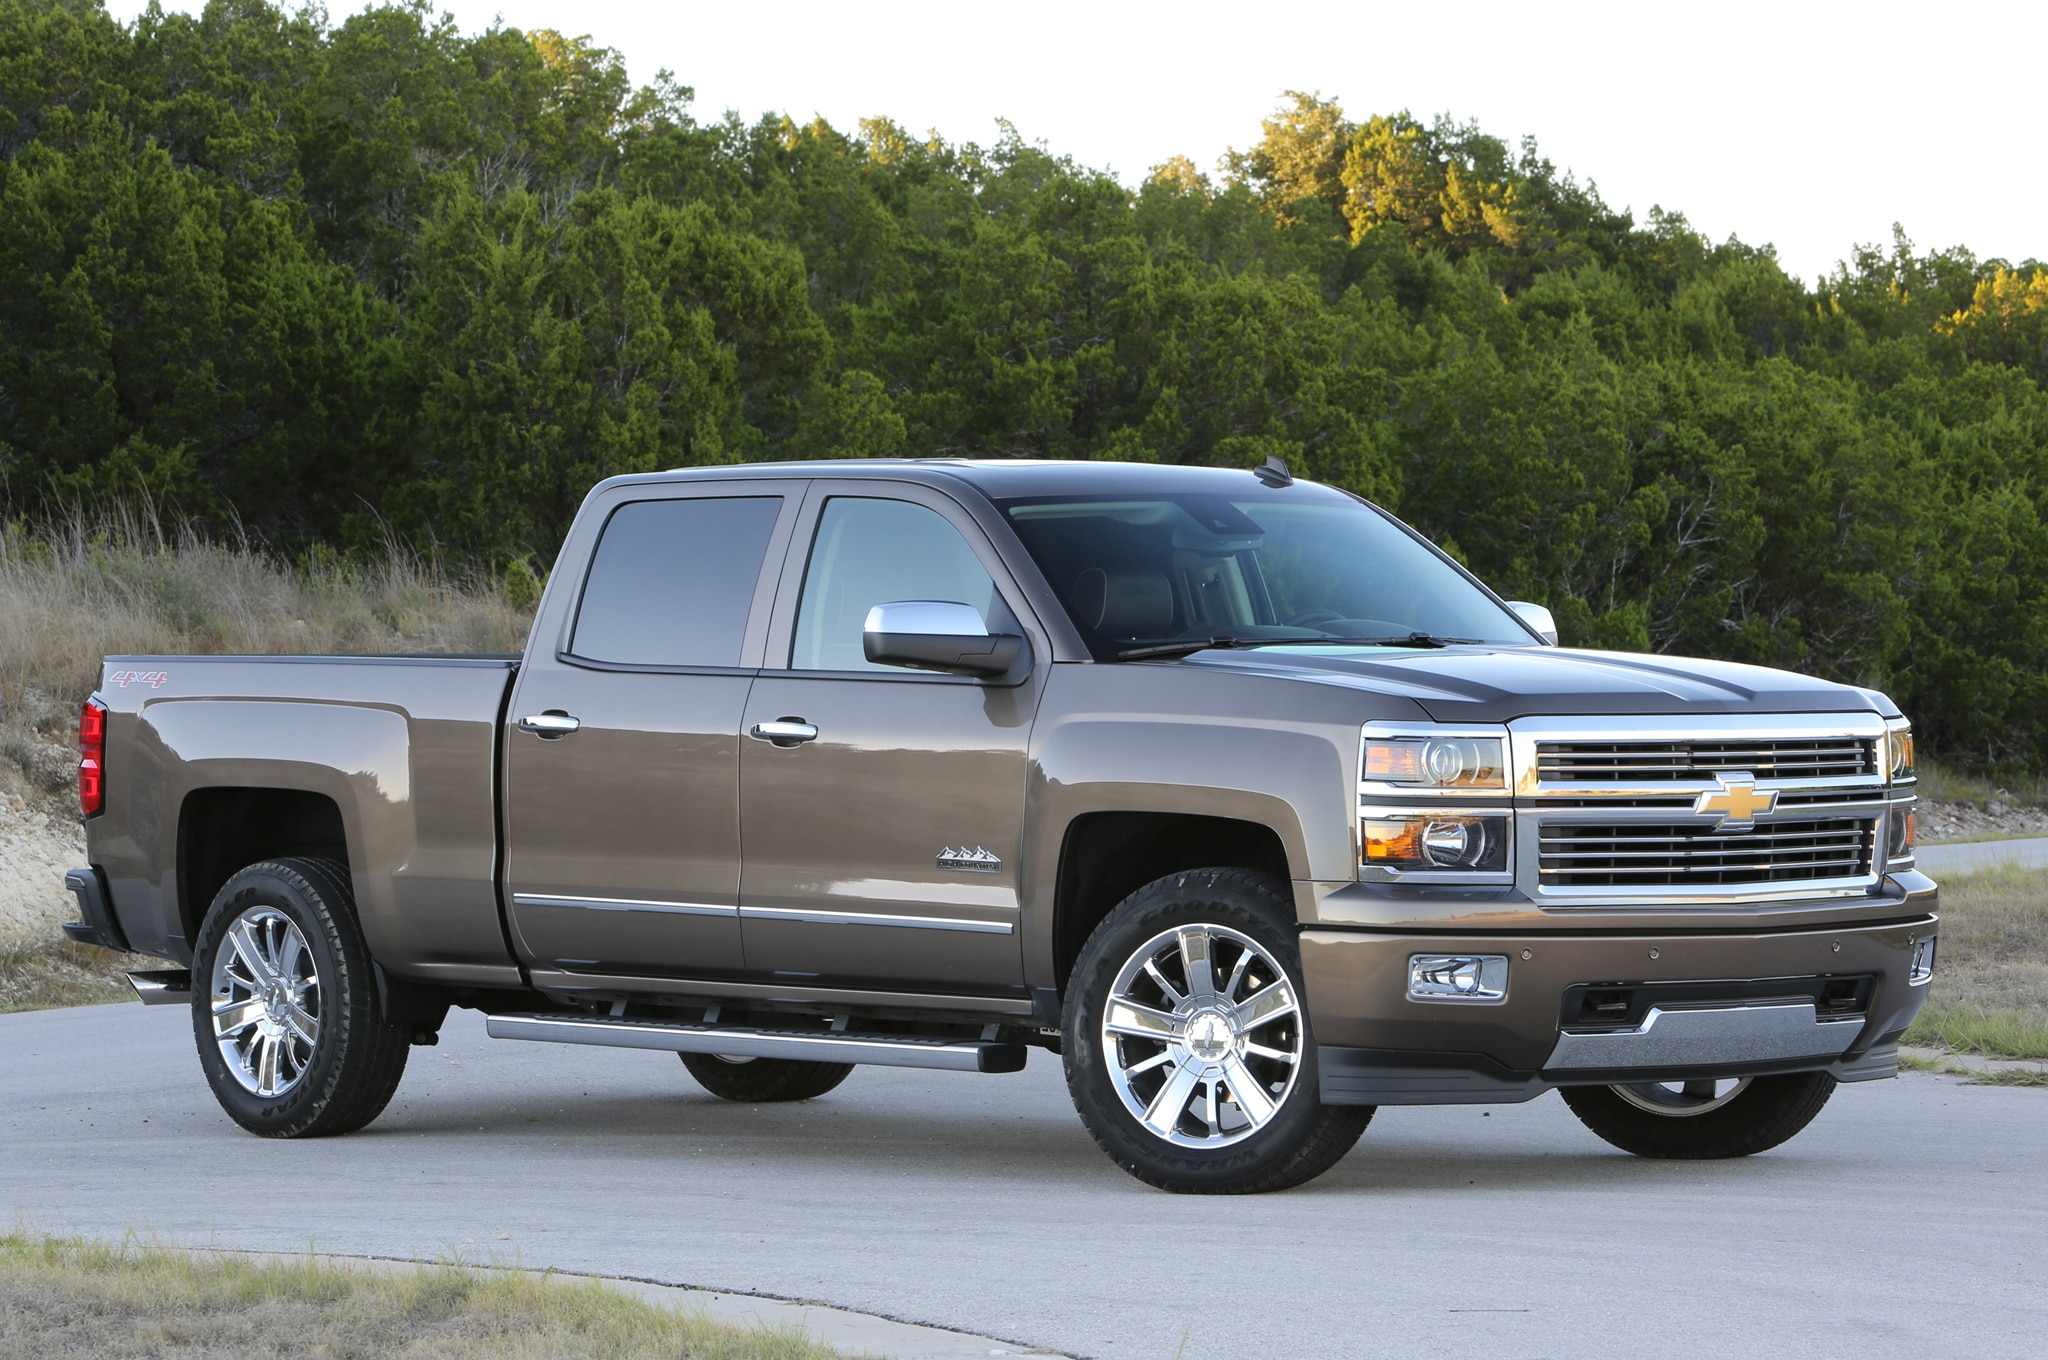 2014 Chevrolet Silverado High Country and GMC Sierra Denali 1500 6.2 First Drive